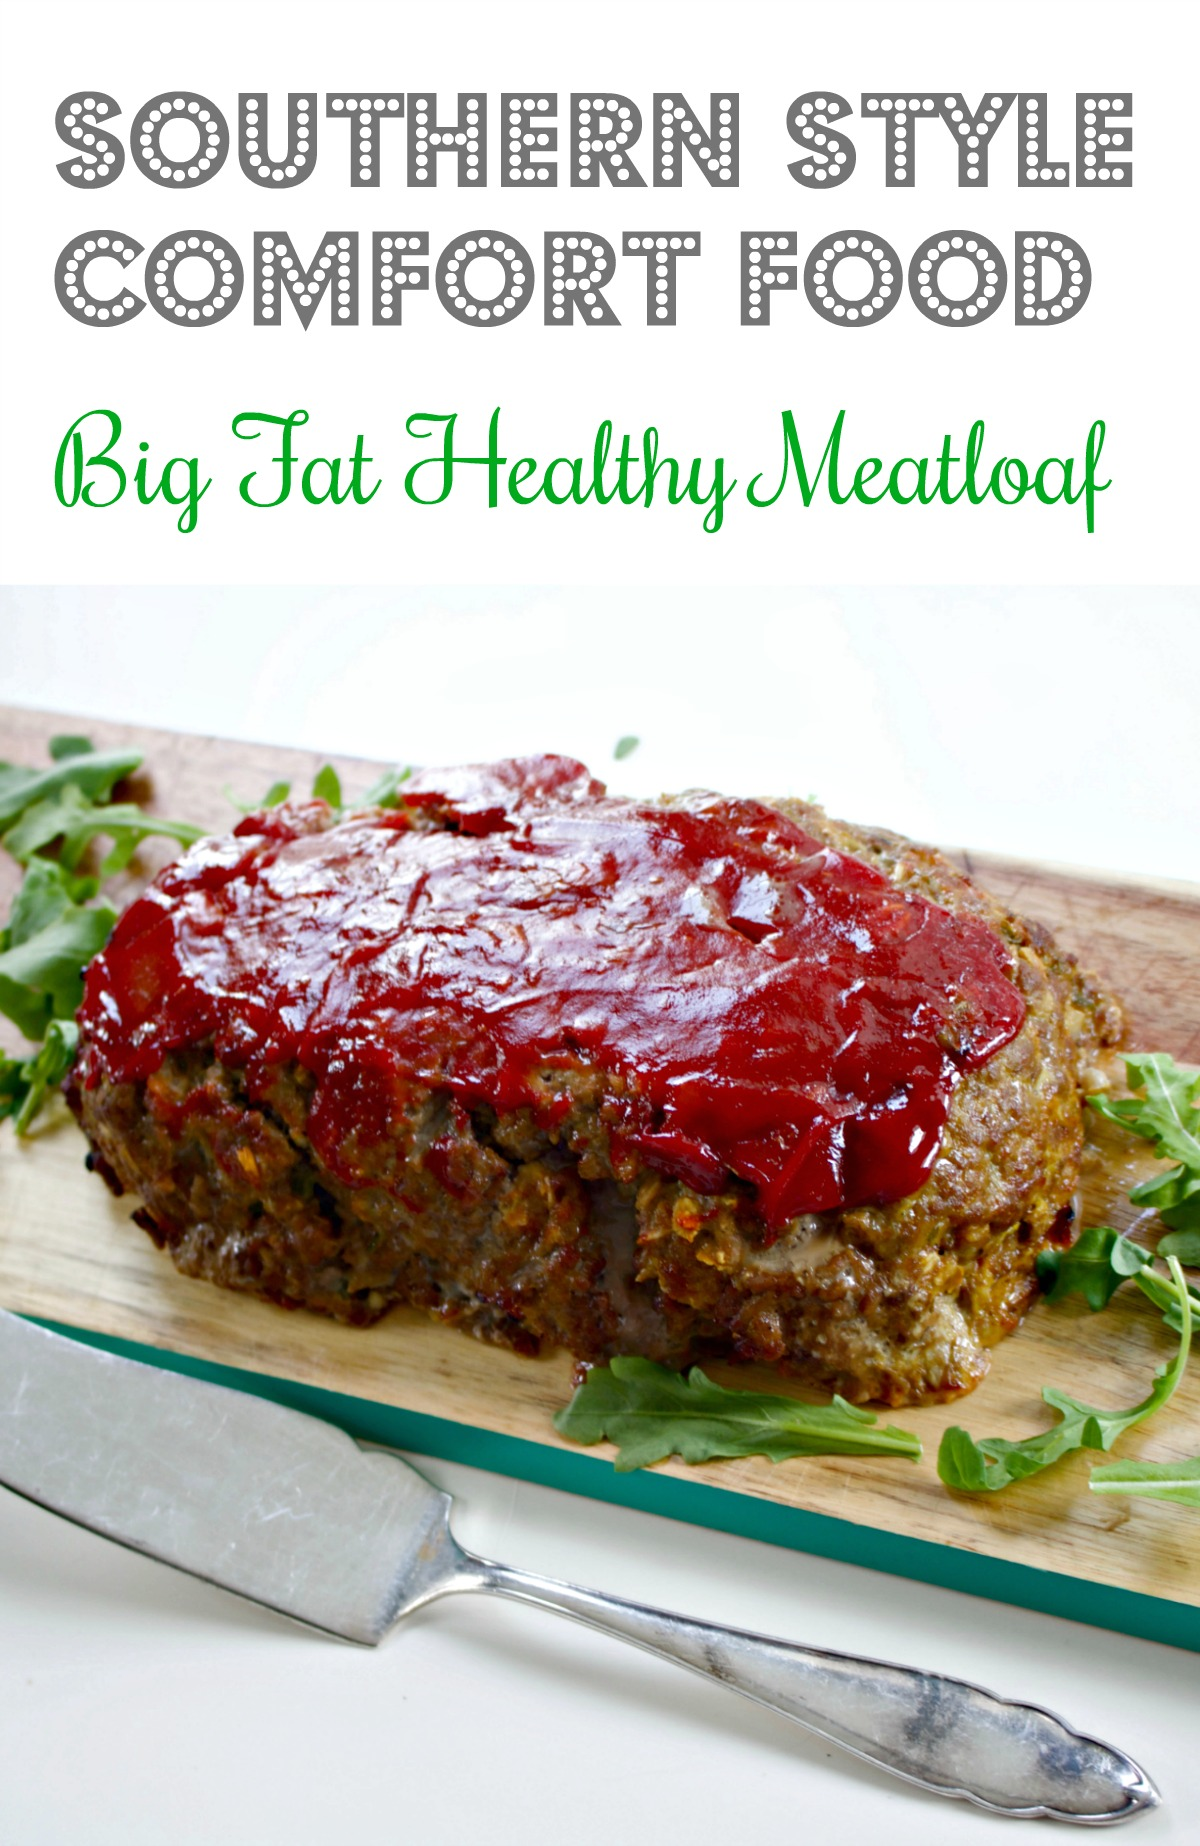 Southern Meatloaf from Spinach Tiger